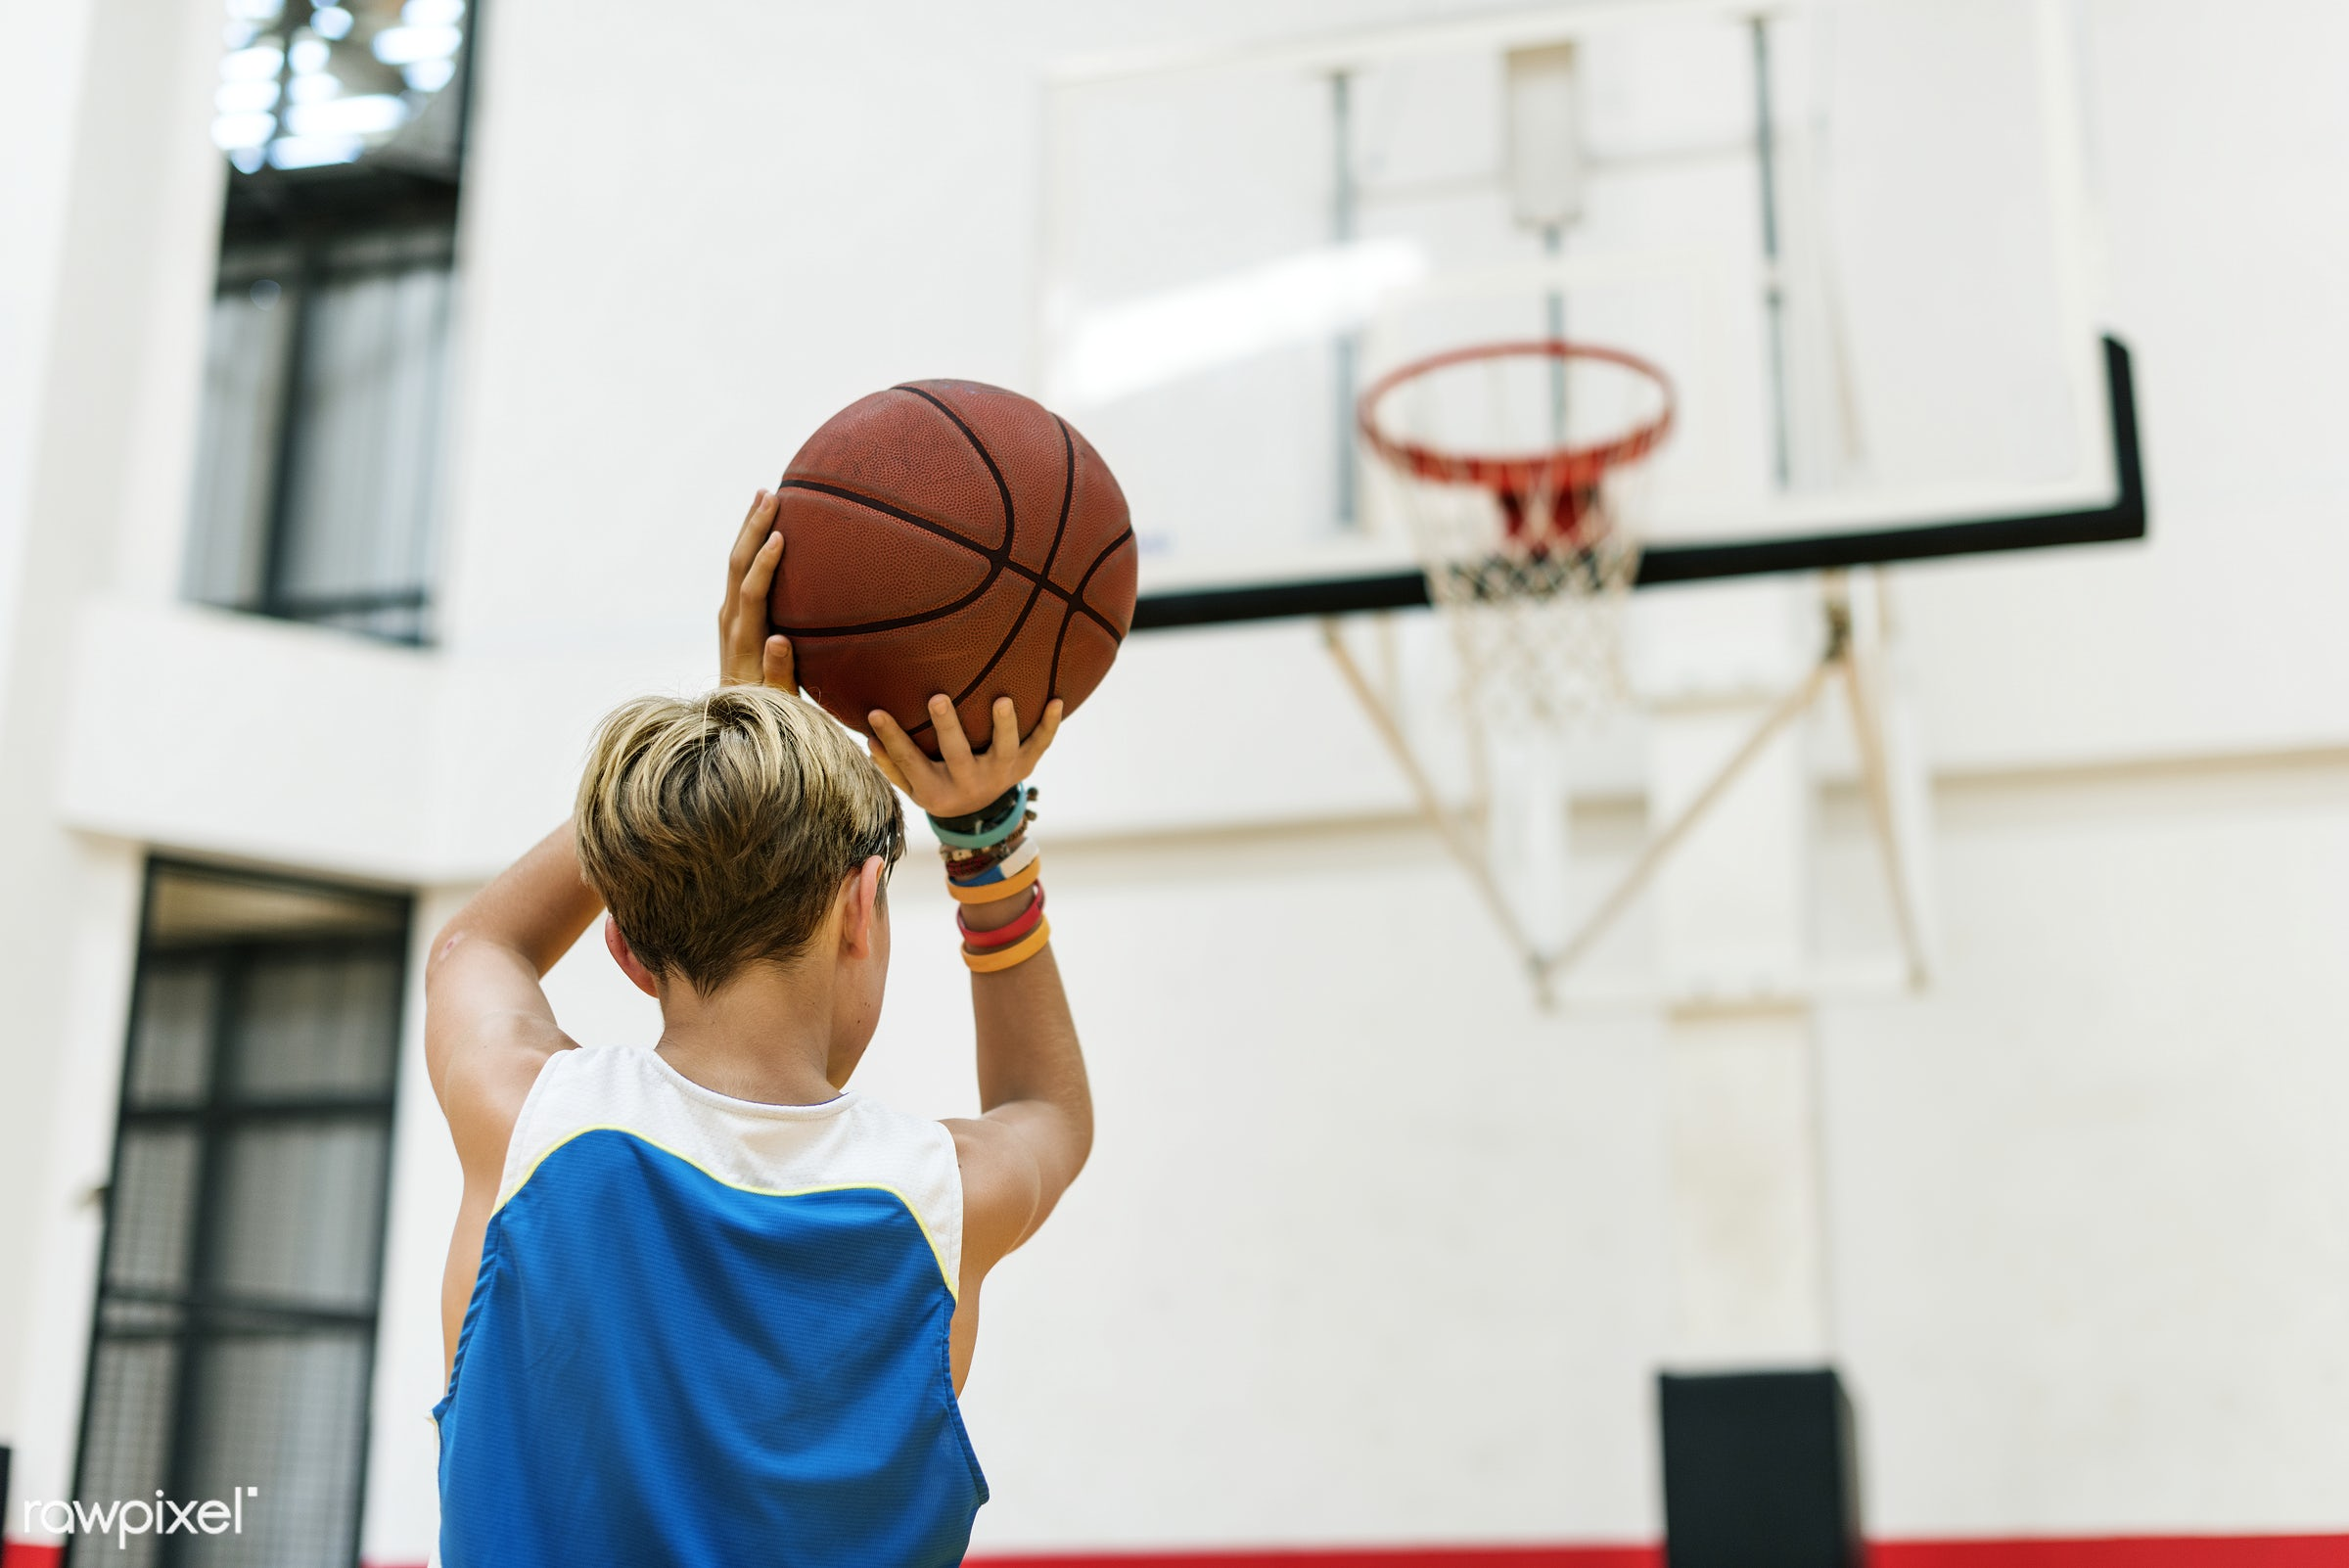 teen, play, basketball, gym, activity, alone, boy, court, exercise, game, gymnasium, man, one, player, practice, shoot,...